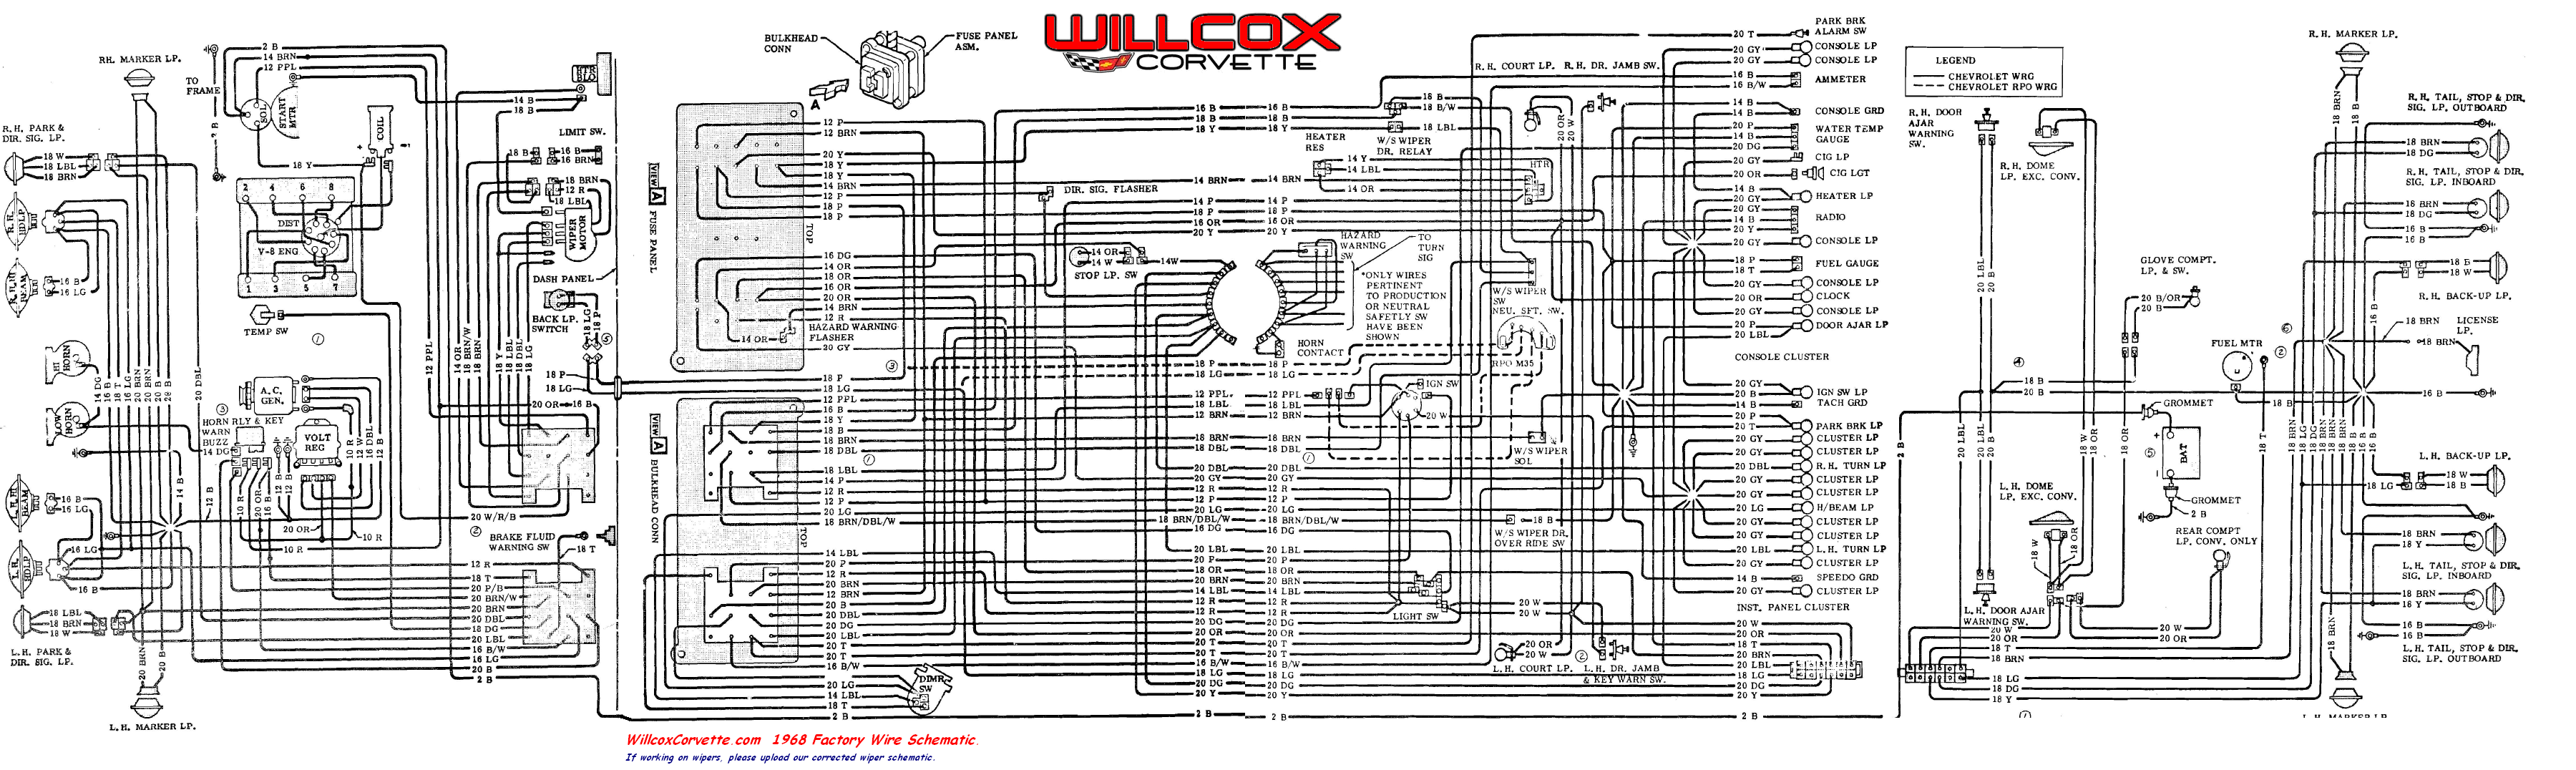 century dl1036 wiring diagram 2008 corvette wiring schematic corvette wiring diagram corvette wiring diagrams online 1968 corvette wiring diagram tracer